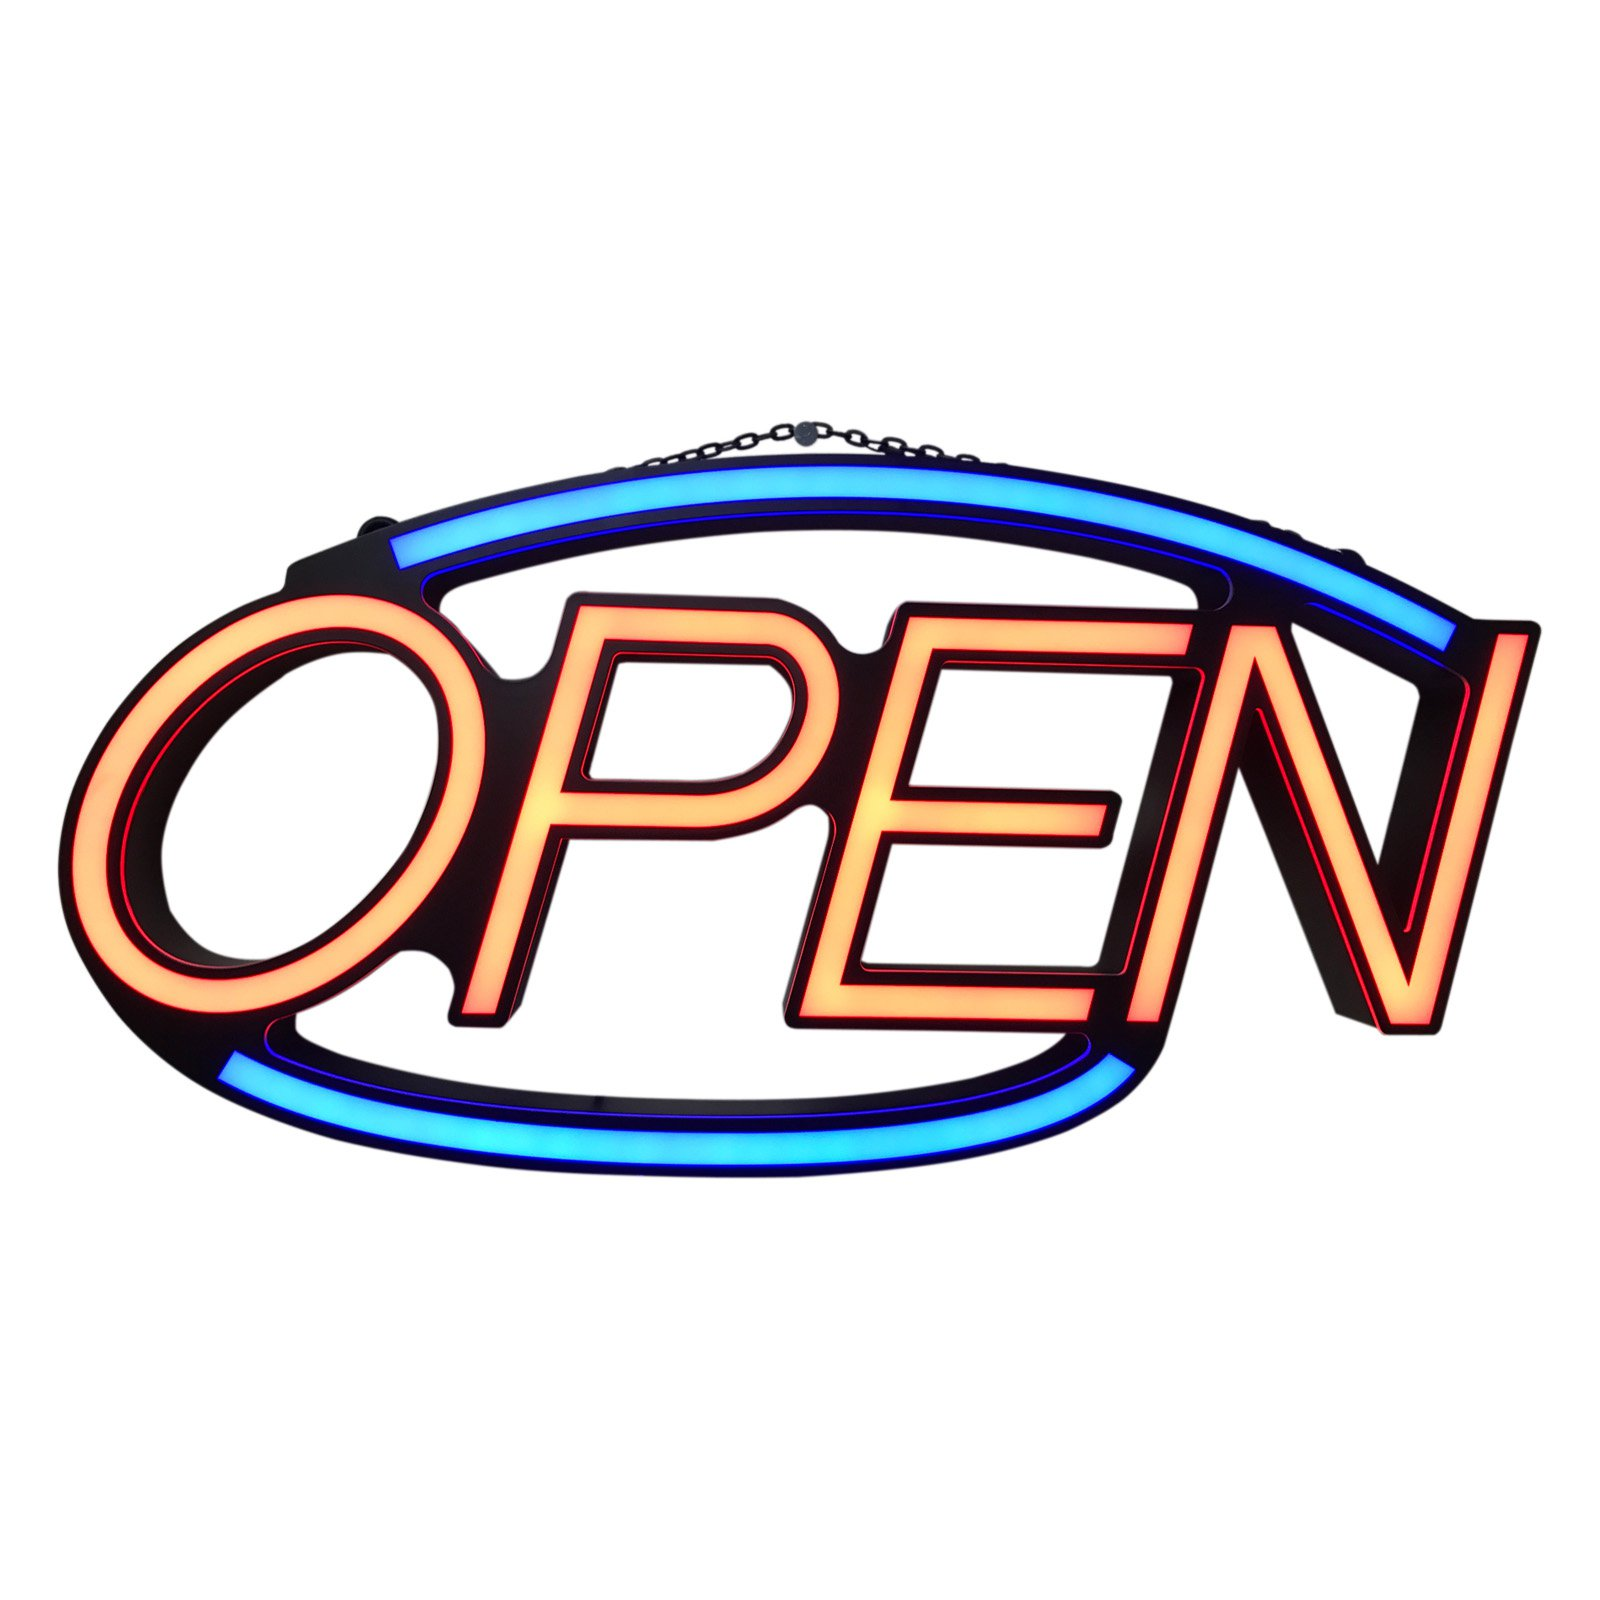 "Oval Soft LED ""OPEN"" Sign; Product Size: W: 25"" X 11.4"" Height x 2.5 Depth; Great for store, shops, open Sign, Soft LED Neon light"